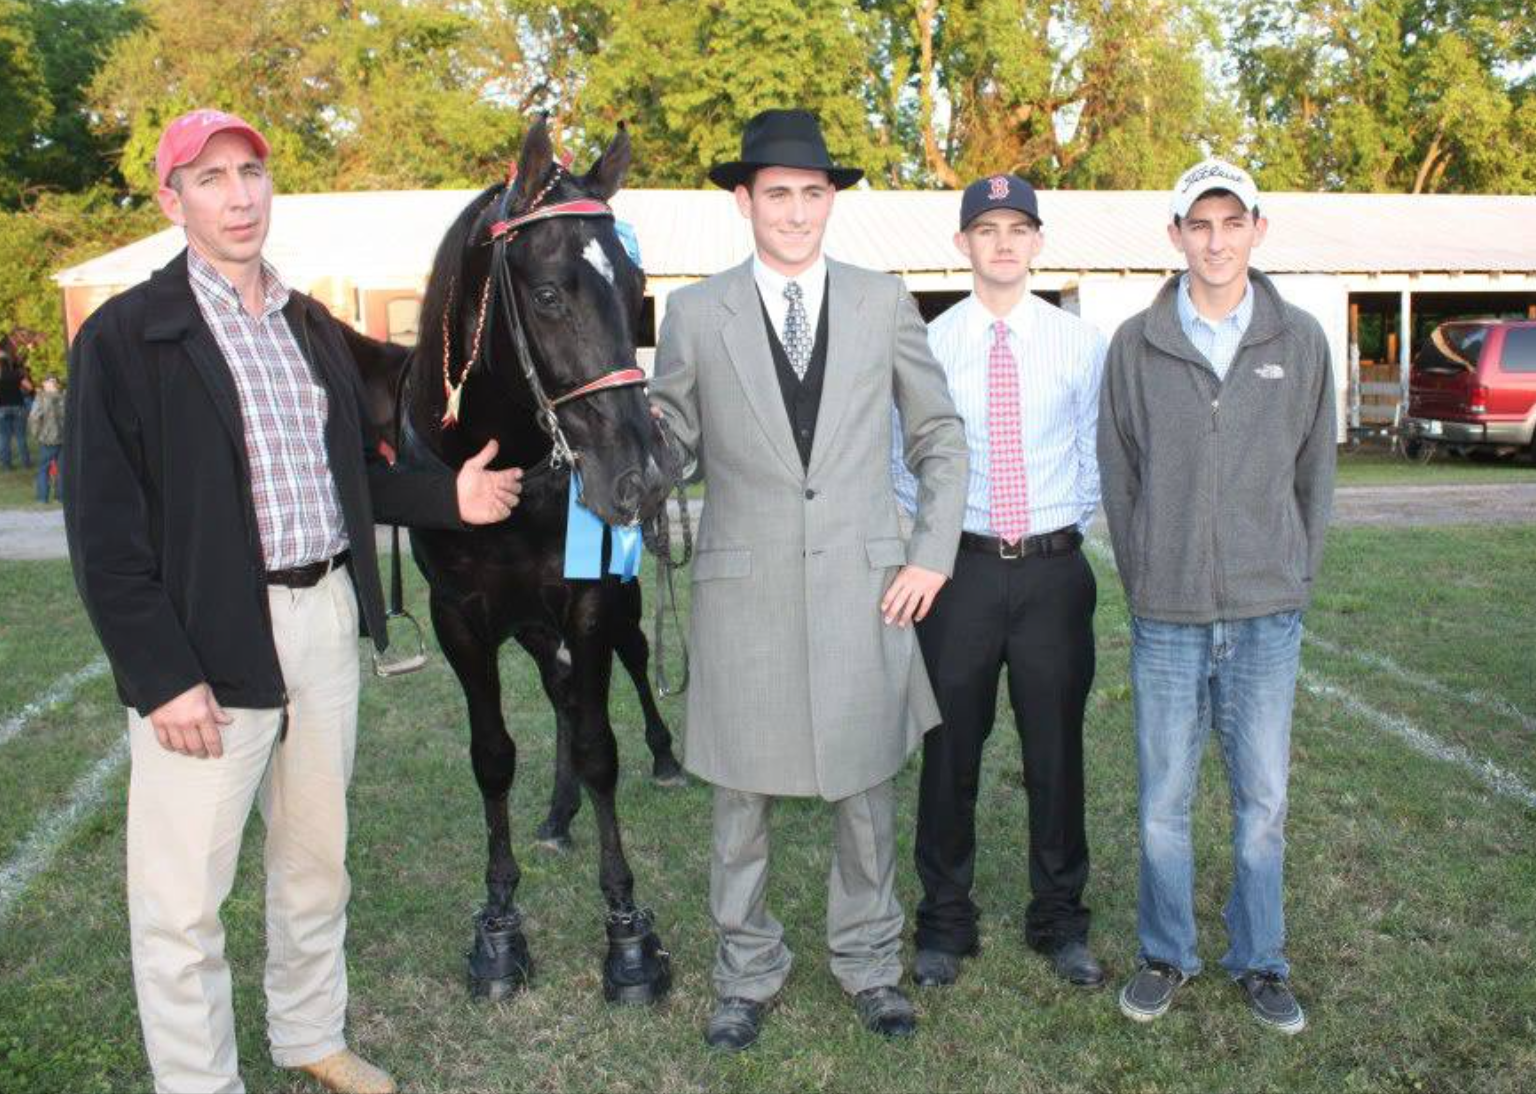 (Left to Right) Mr. Danny Burks, unidentified Horse, Hayden Burks, two unidentified individuals.